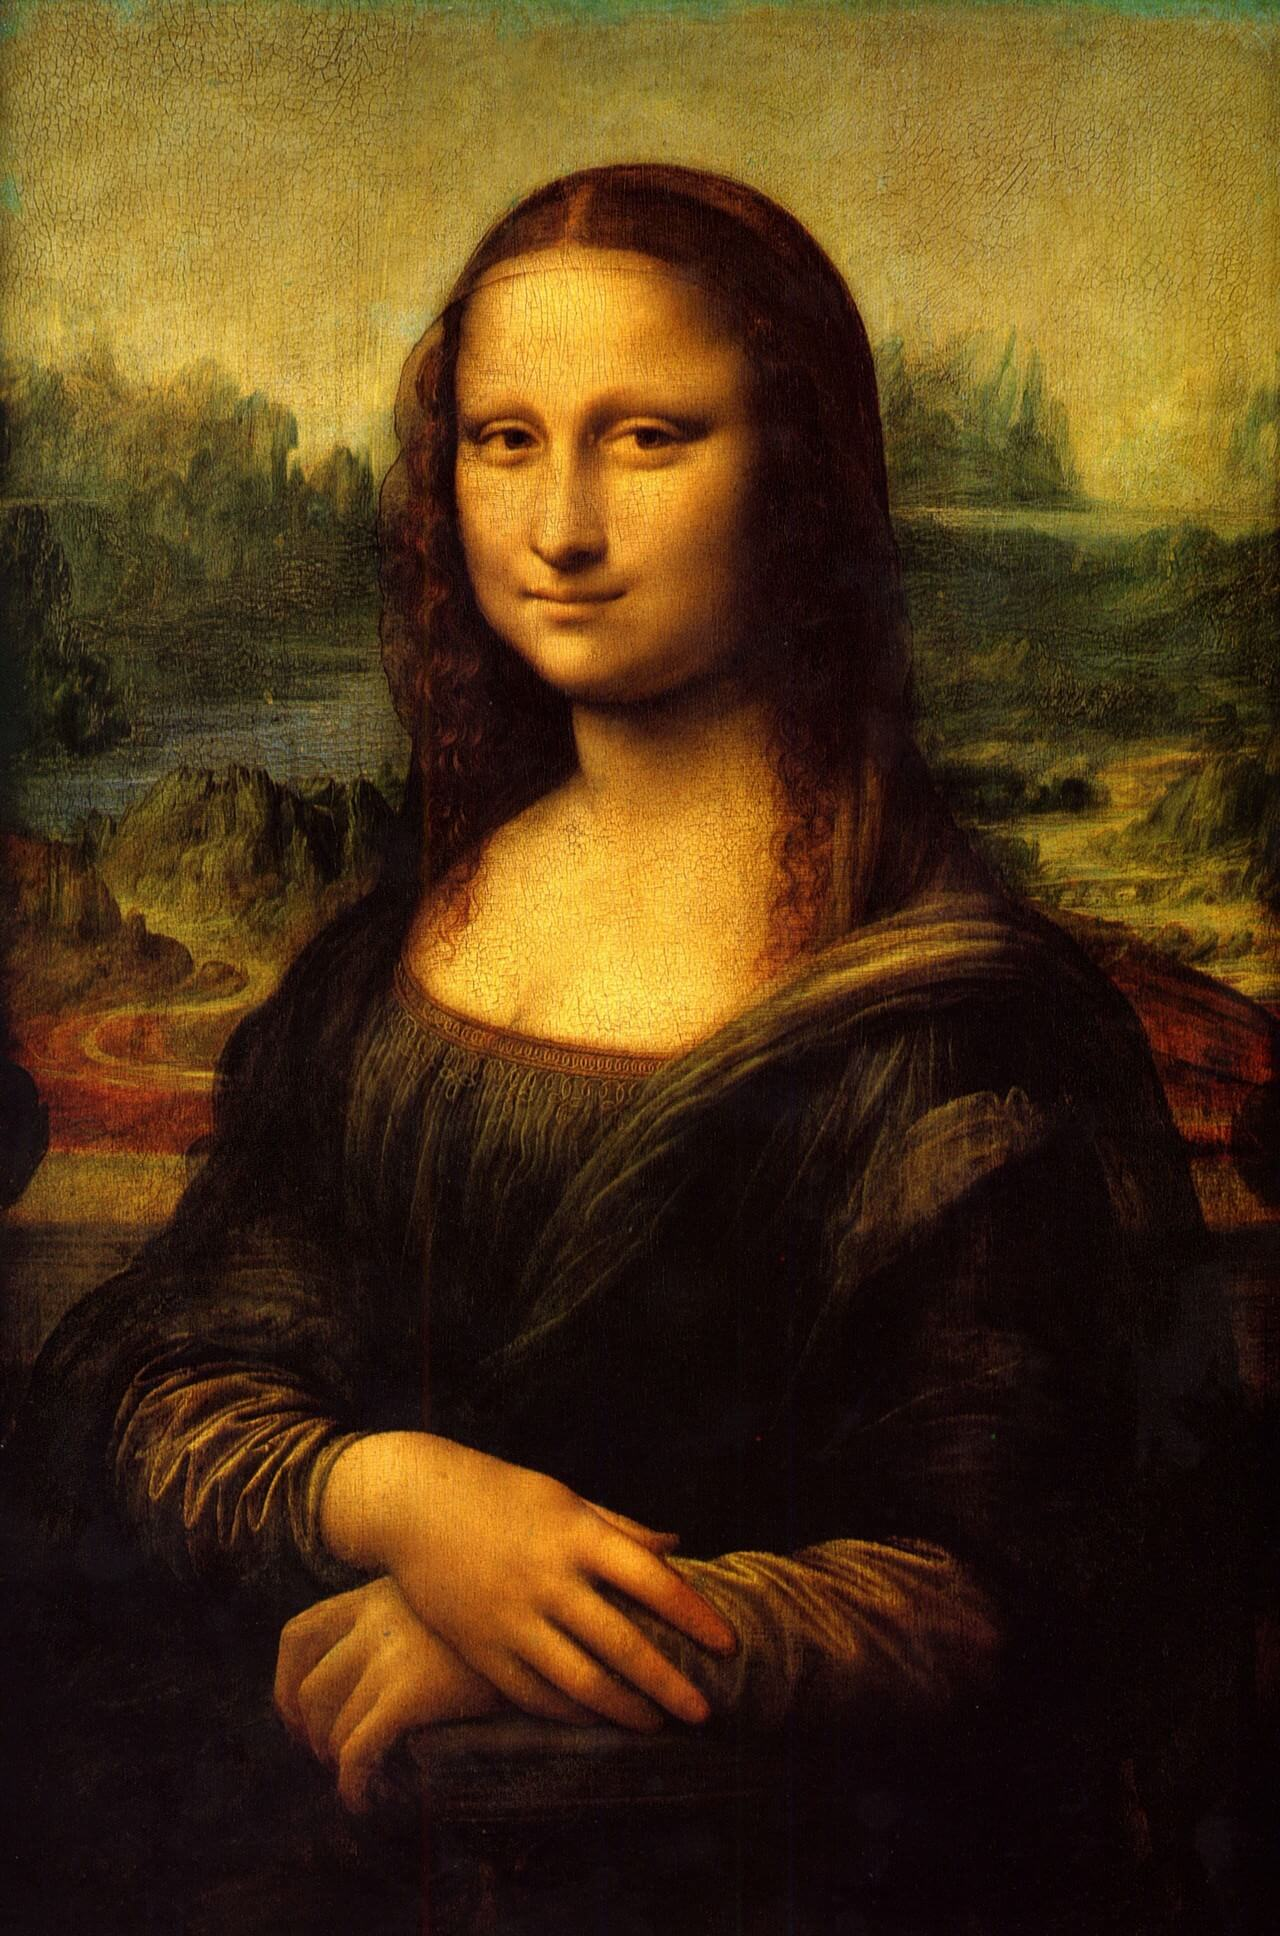 Emily da vinci please make a comeback